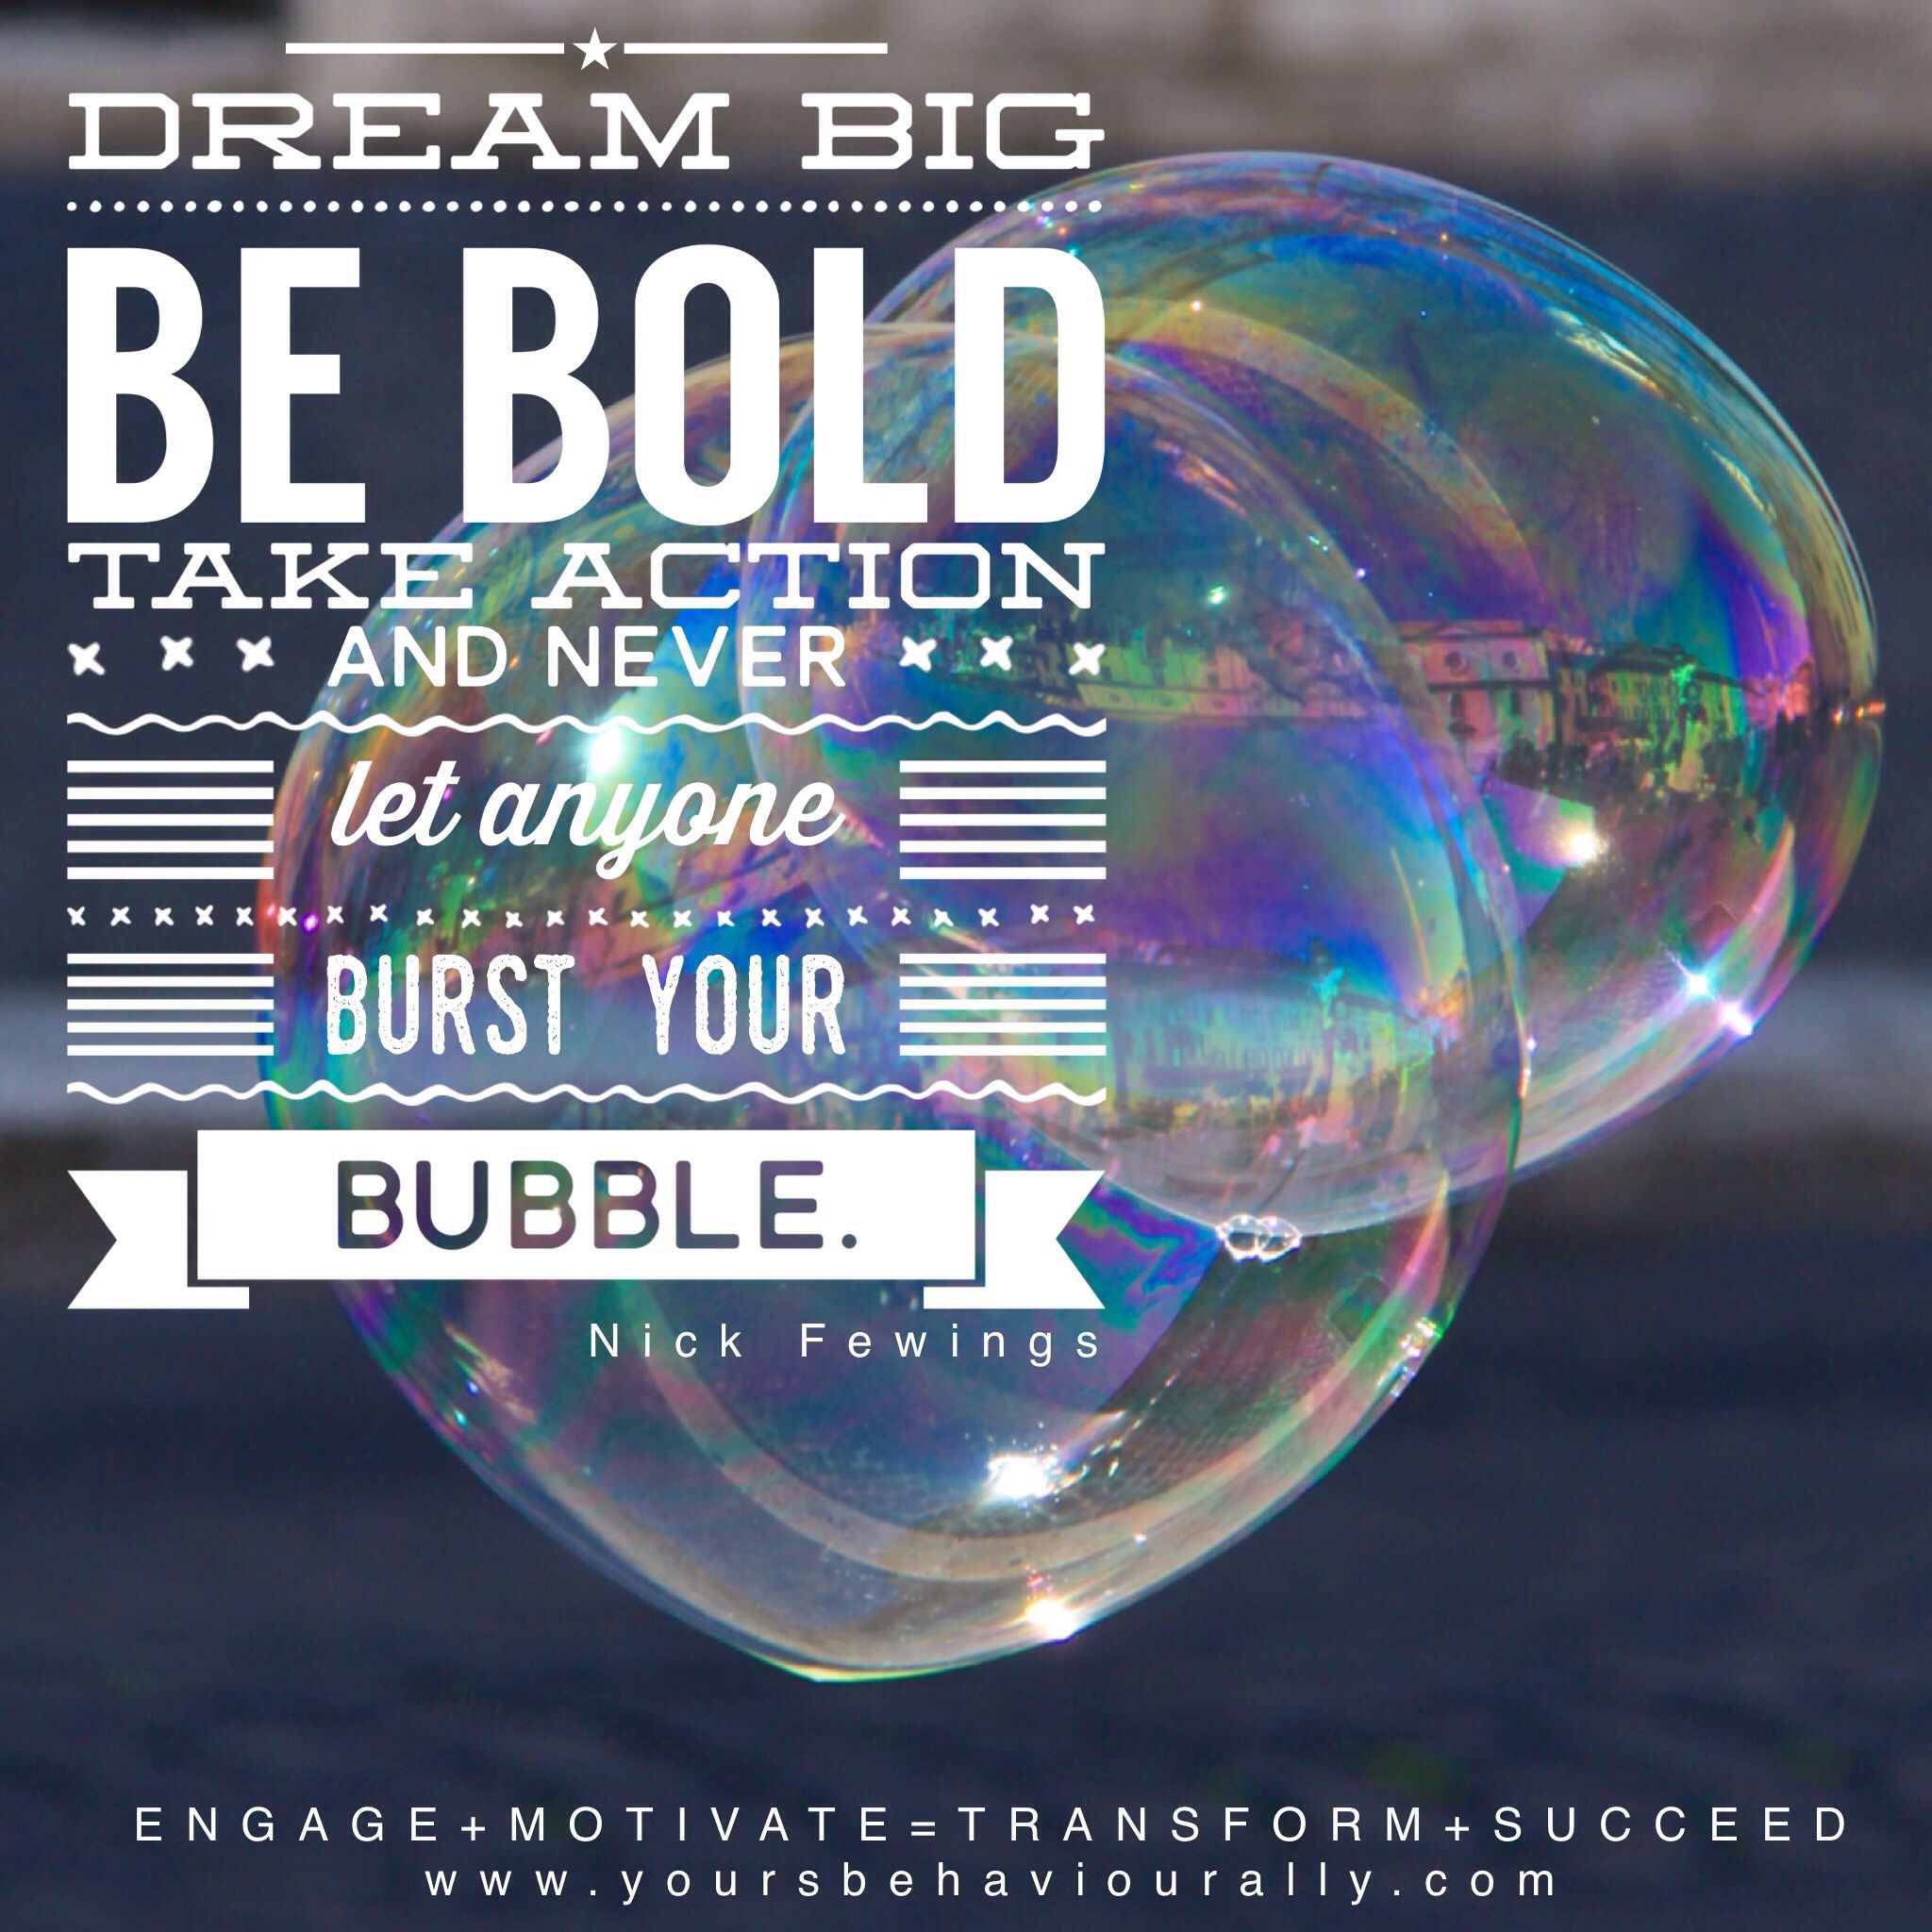 Motivational quotes dream quotes dream big quotes action quotes - Action Don T Burst The Bubble Quotes Quotesmotivational Quoteslife Quotesinspirational Quotesthe Bubblepositive Affirmationsdream Bigbe